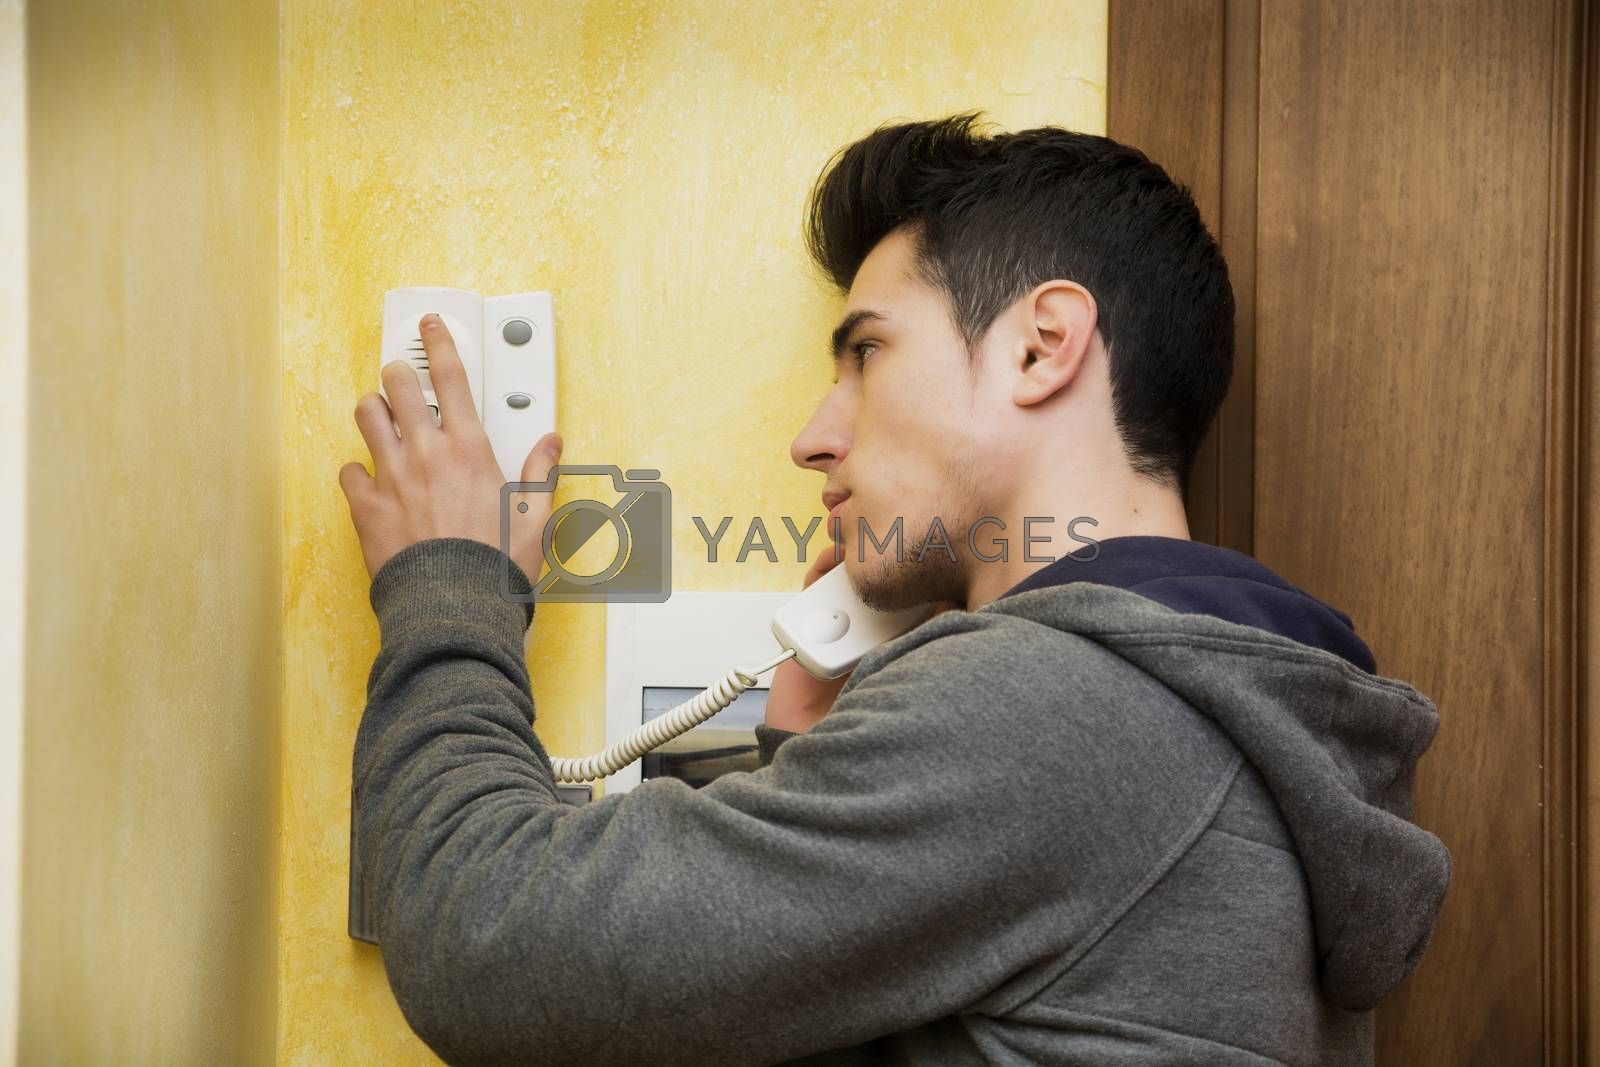 Teenager or young man answering the intercom in an apartment, pressing button to open entrance door